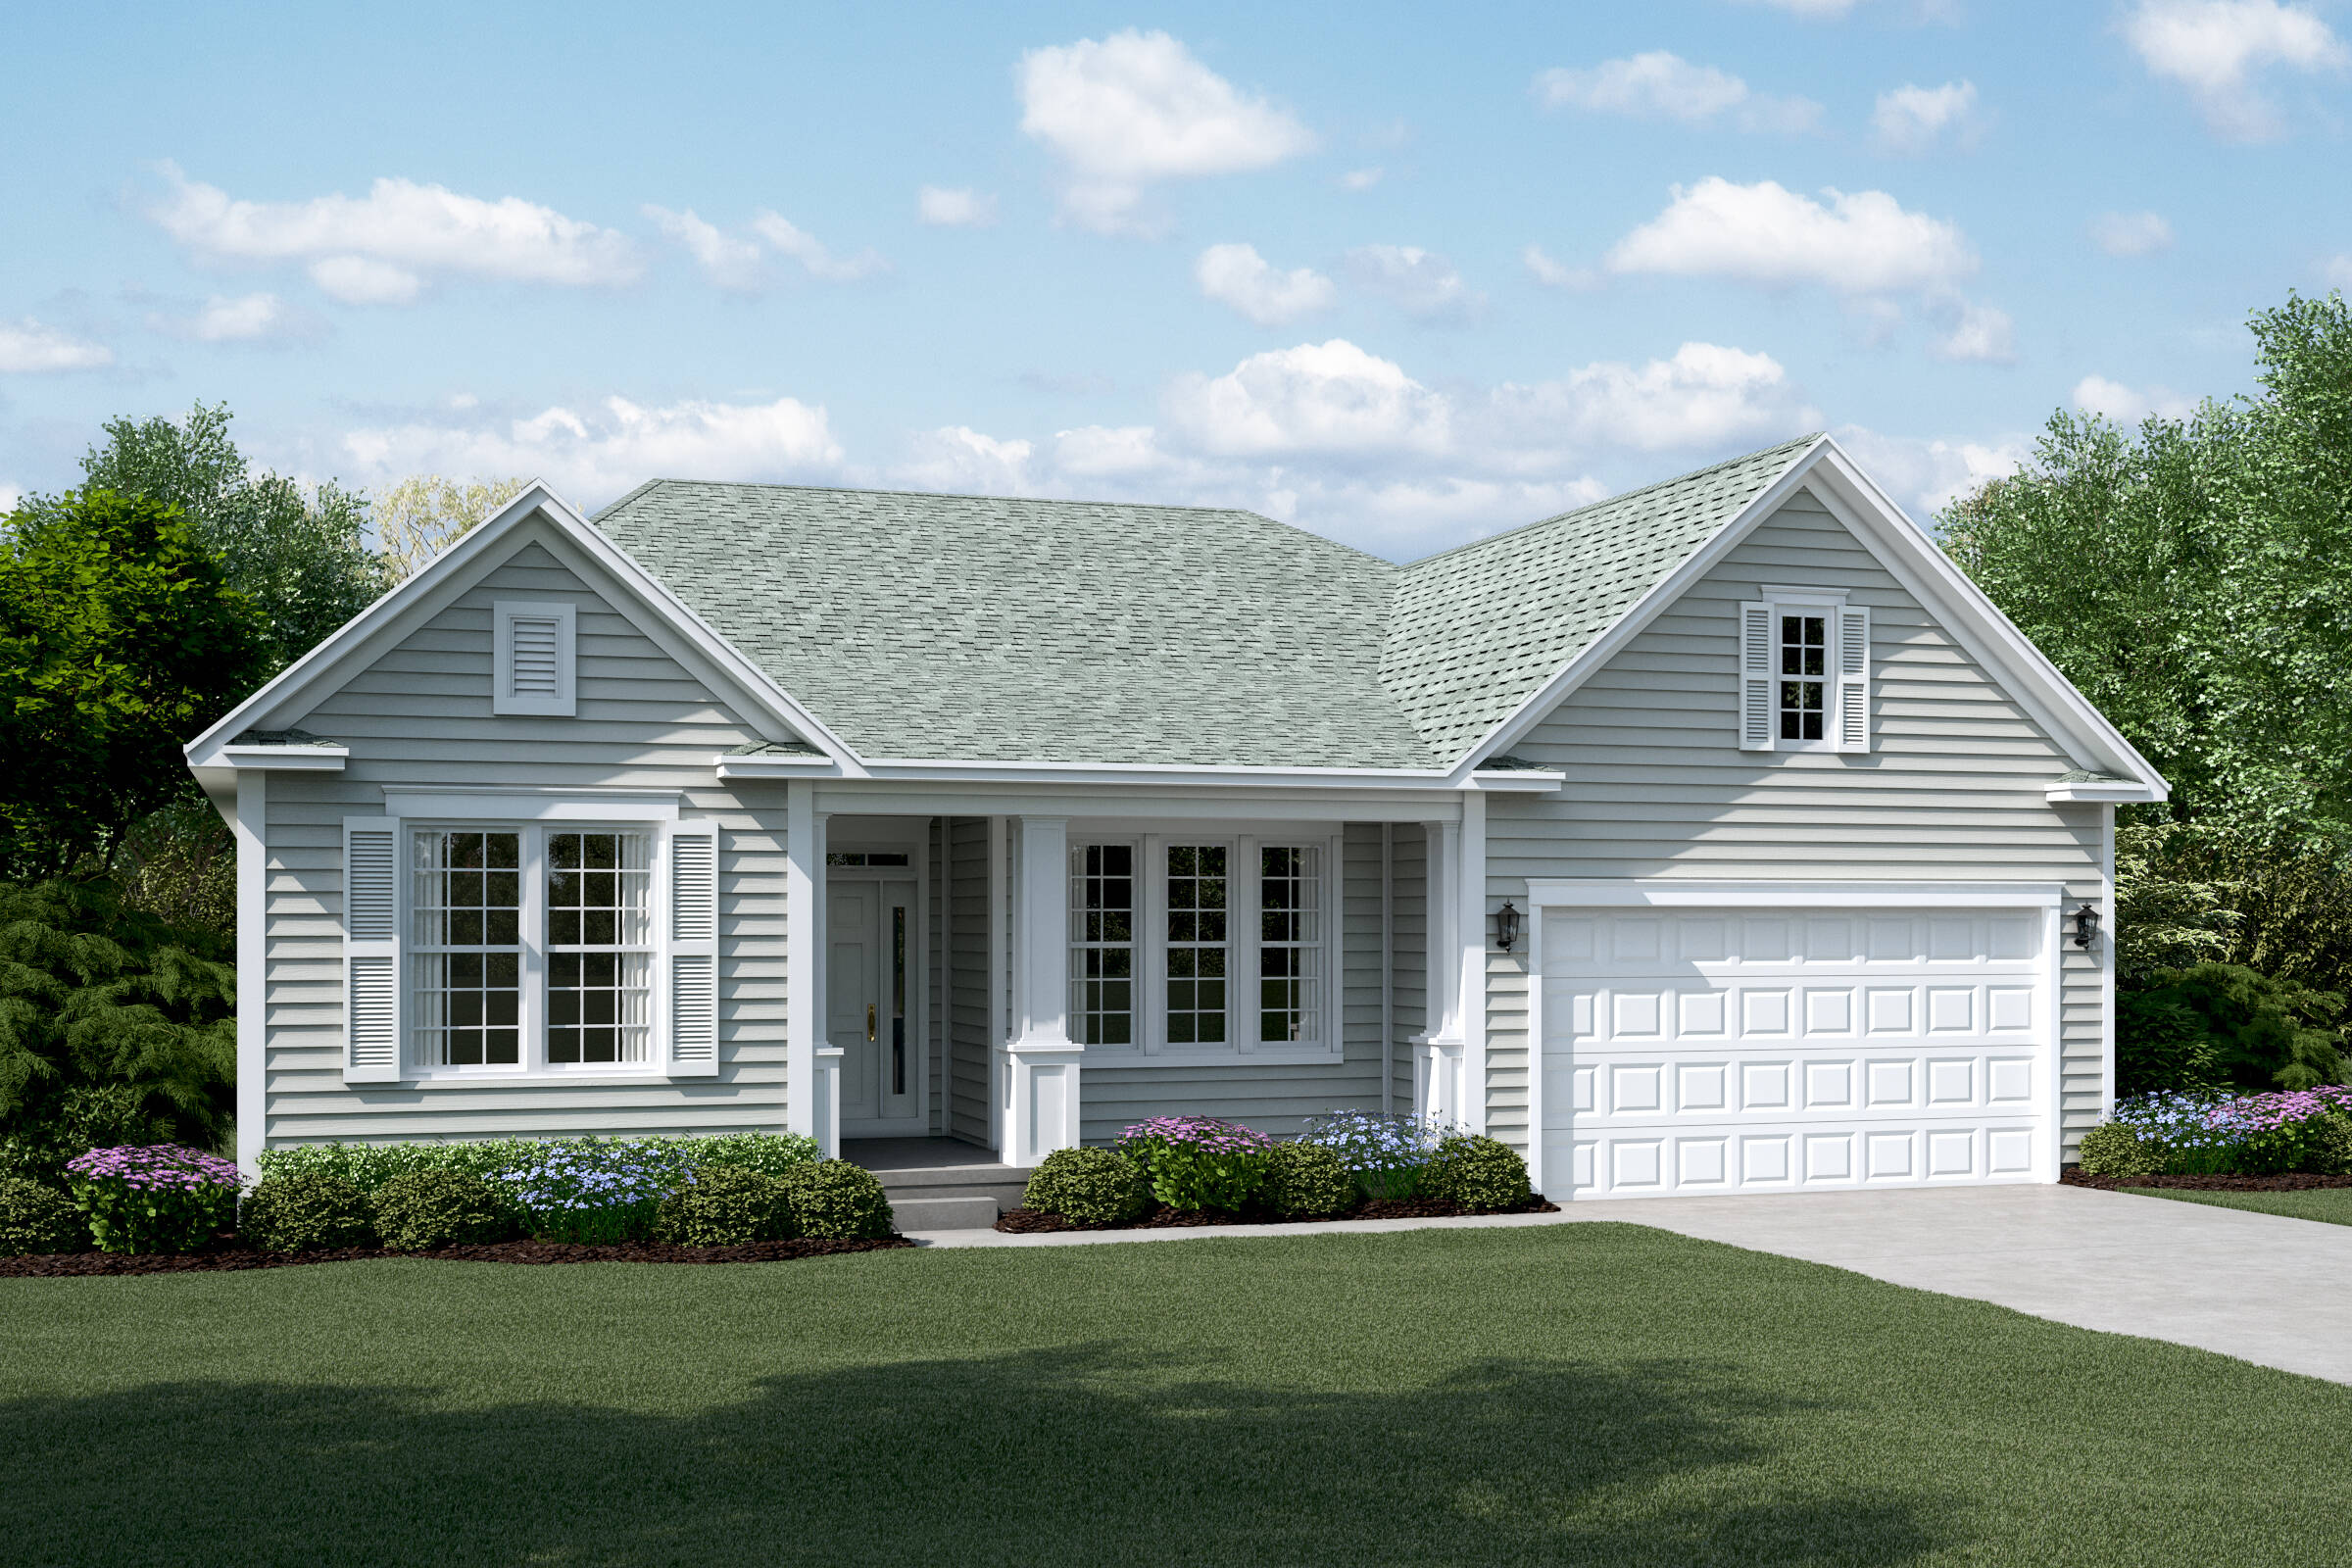 rockford h siding sagerbook new homes in south elgin